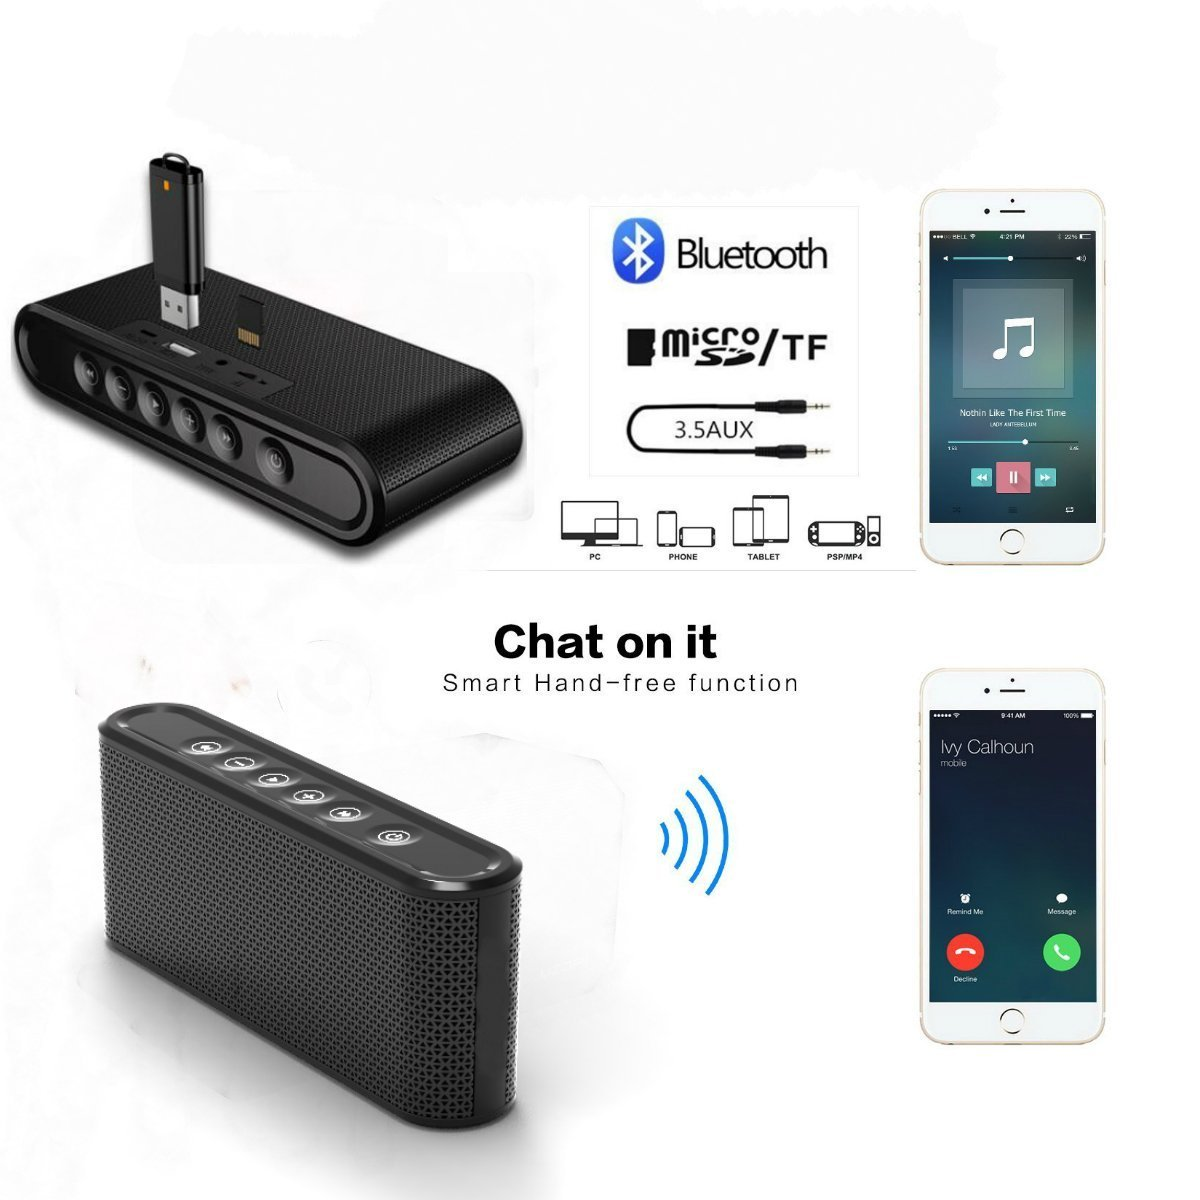 Bluetooth Speakers, 6W Touch Metal Speakers, Mini Portable Bluetooth 4.2 Wireless with Super Bass, Treble Stereo Subwoofer, Support TF Card, USB Disk, 3.5mm AUX Input,Mobile Computer Accessories by WORENMI (Image #6)